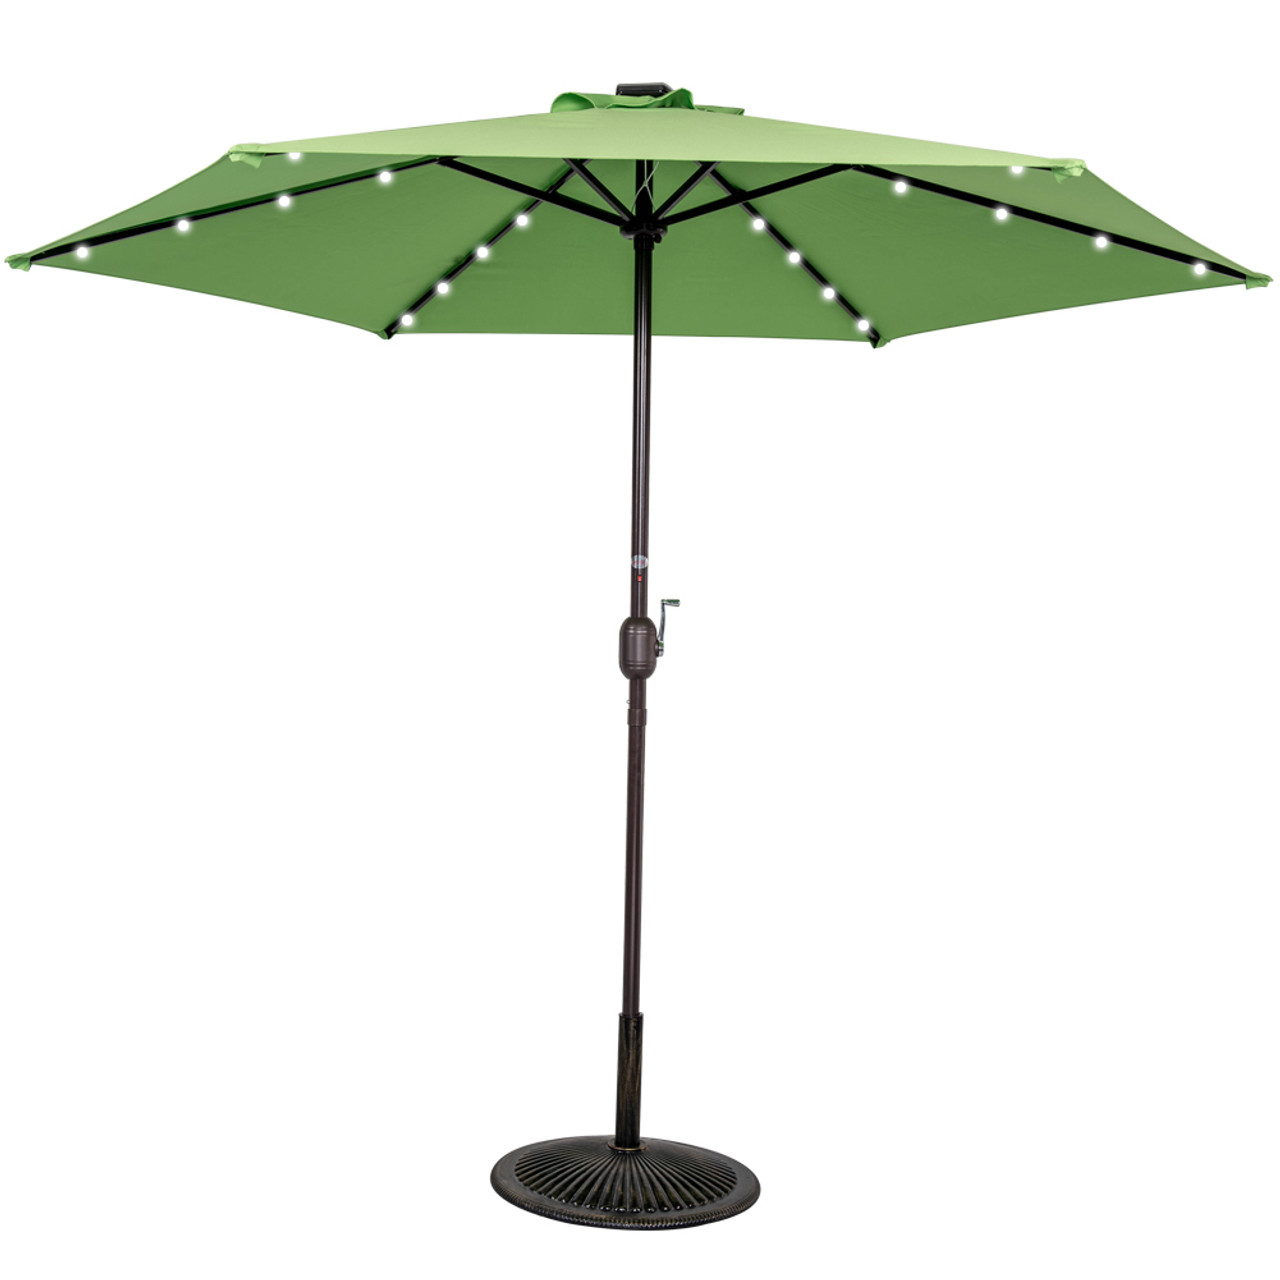 Attirant 9ft 24 Led Light Outdoor Market Patio Umbrella Garden Pool With Crank, 6  Ribs (Lime Green)